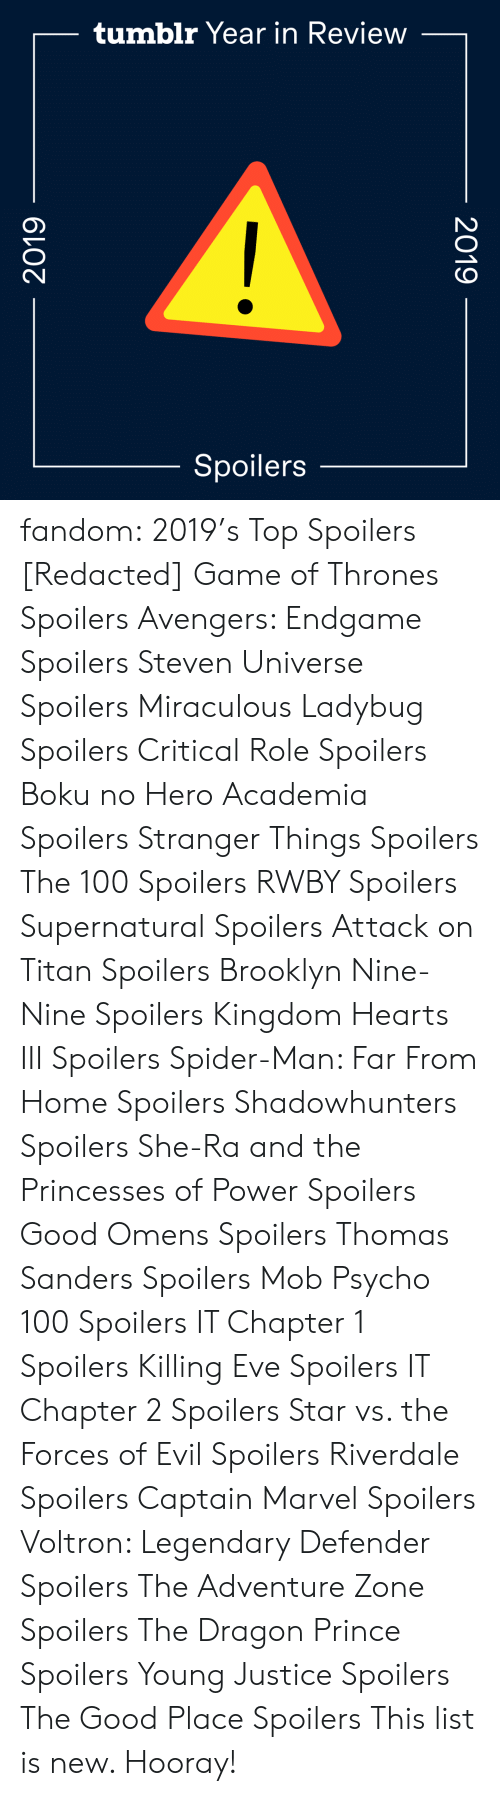 Hearts: tumblr Year in Review  Spoilers  2019  2019 fandom:  2019's Top Spoilers  [Redacted]  Game of Thrones Spoilers  Avengers: Endgame Spoilers  Steven Universe Spoilers  Miraculous Ladybug Spoilers  Critical Role Spoilers  Boku no Hero Academia Spoilers  Stranger Things Spoilers  The 100 Spoilers  RWBY Spoilers  Supernatural Spoilers  Attack on Titan Spoilers  Brooklyn Nine-Nine Spoilers  Kingdom Hearts III Spoilers  Spider-Man: Far From Home Spoilers  Shadowhunters Spoilers  She-Ra and the Princesses of Power Spoilers  Good Omens Spoilers  Thomas Sanders Spoilers  Mob Psycho 100 Spoilers  IT Chapter 1 Spoilers  Killing Eve Spoilers  IT Chapter 2 Spoilers  Star vs. the Forces of Evil Spoilers  Riverdale Spoilers  Captain Marvel Spoilers  Voltron: Legendary Defender Spoilers  The Adventure Zone Spoilers  The Dragon Prince Spoilers  Young Justice Spoilers  The Good Place Spoilers This list is new. Hooray!